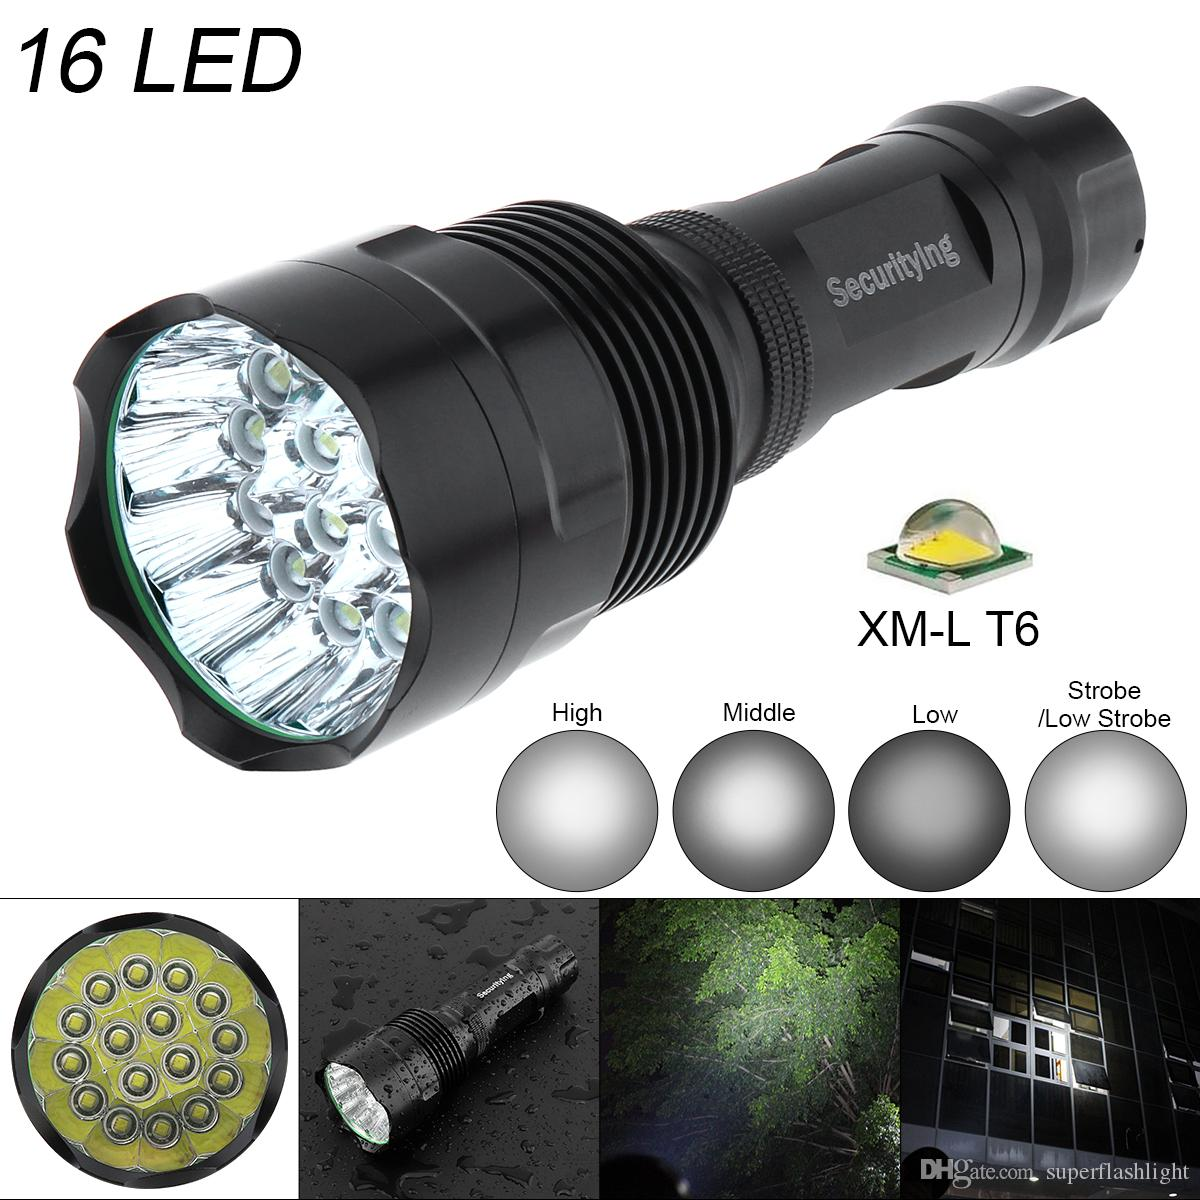 SecurityIng Super Bright 16x XM-L T6 LED 5400Lumens Waterproof Flashlight Torch 5 Modes Support 18650 Rechargeable Battery LEF_S0V